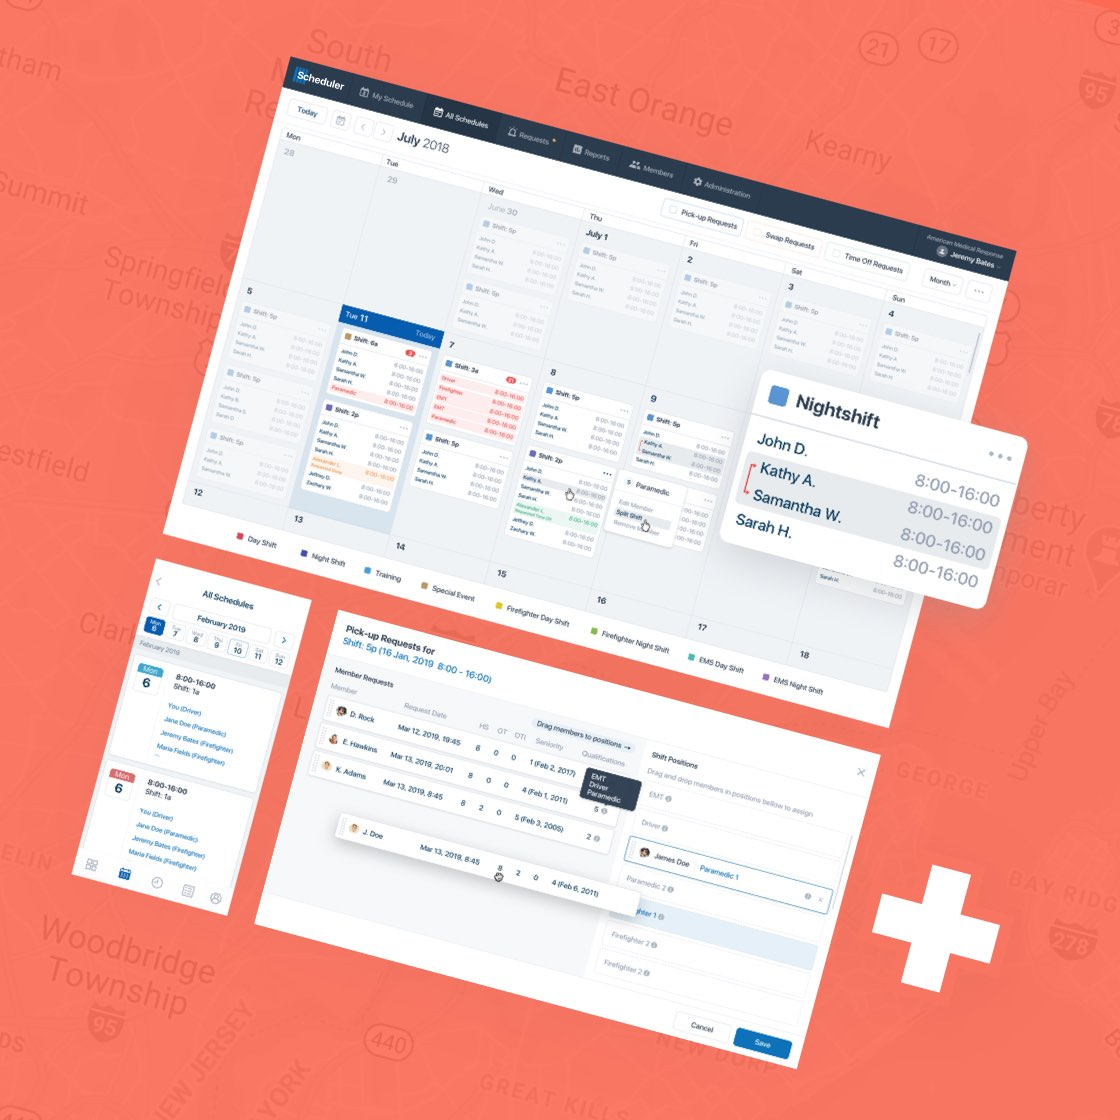 Online Scheduling and Workforce Management for Fire and EMS